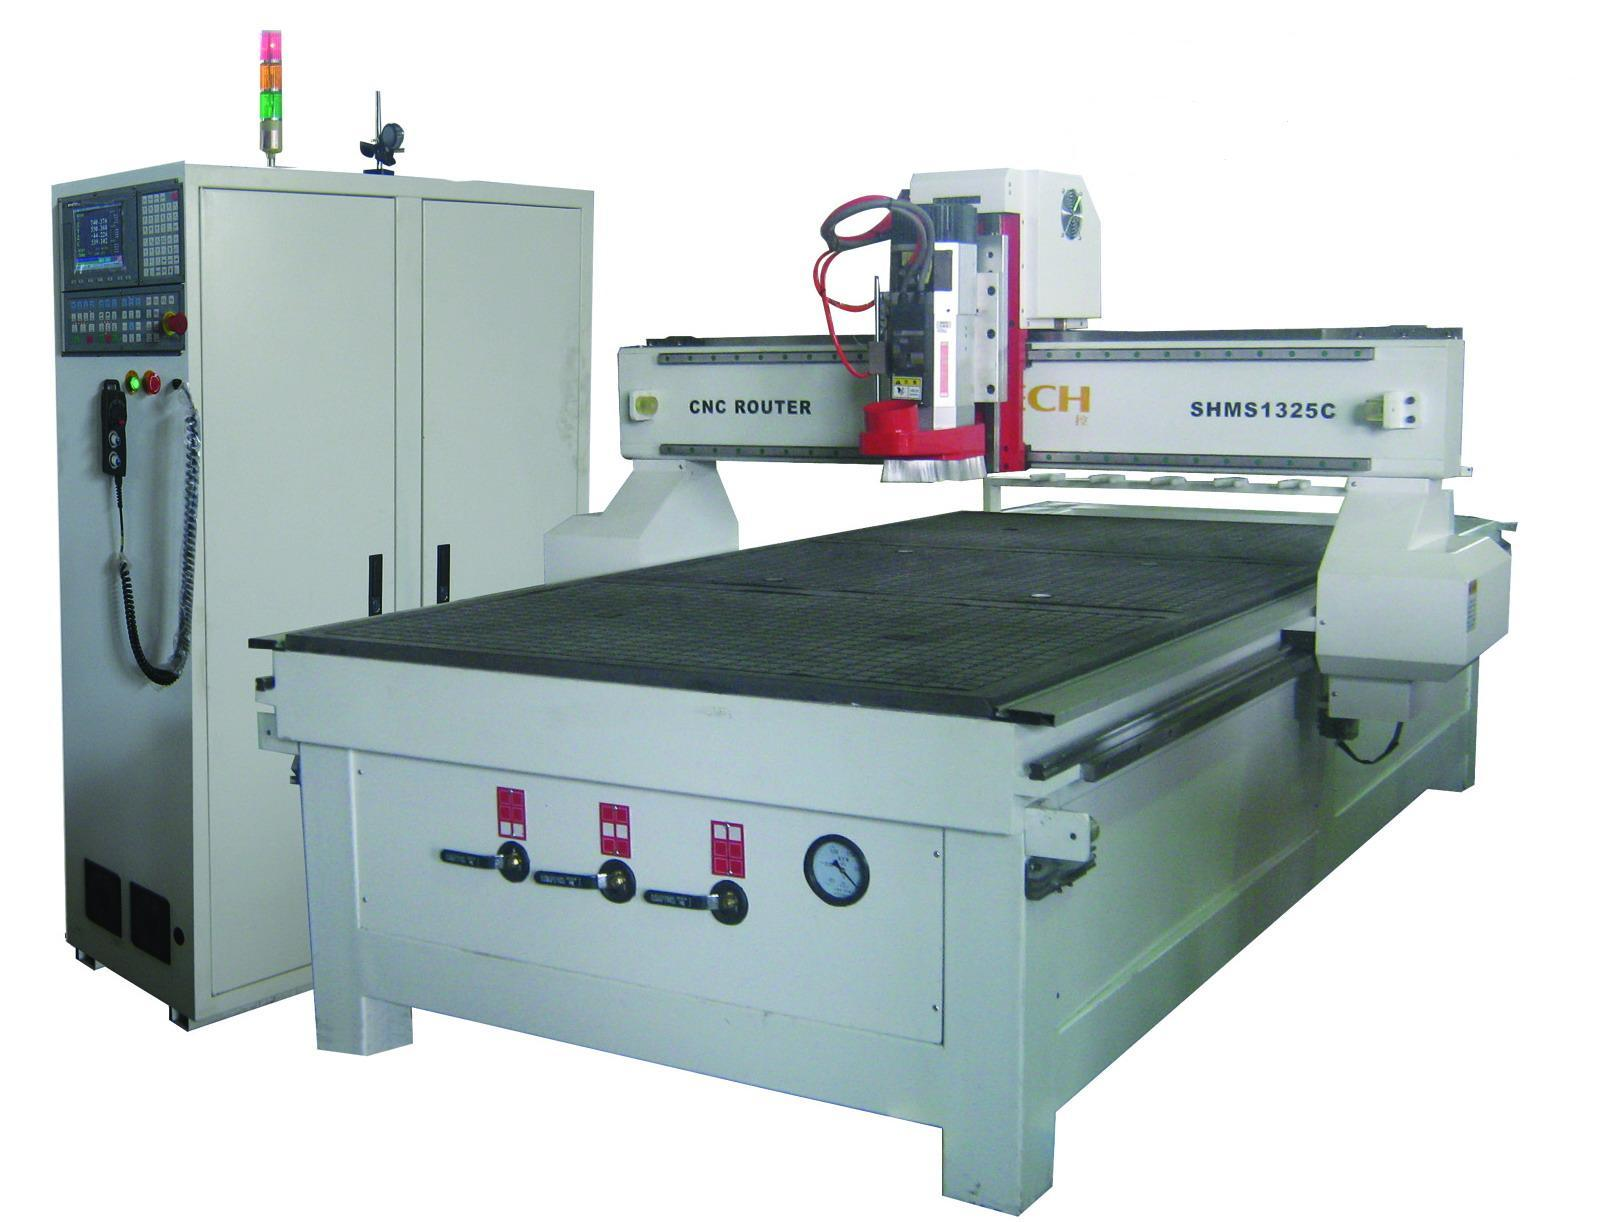 woodworking cnc machines for sale uk | Discover Woodworking Projects